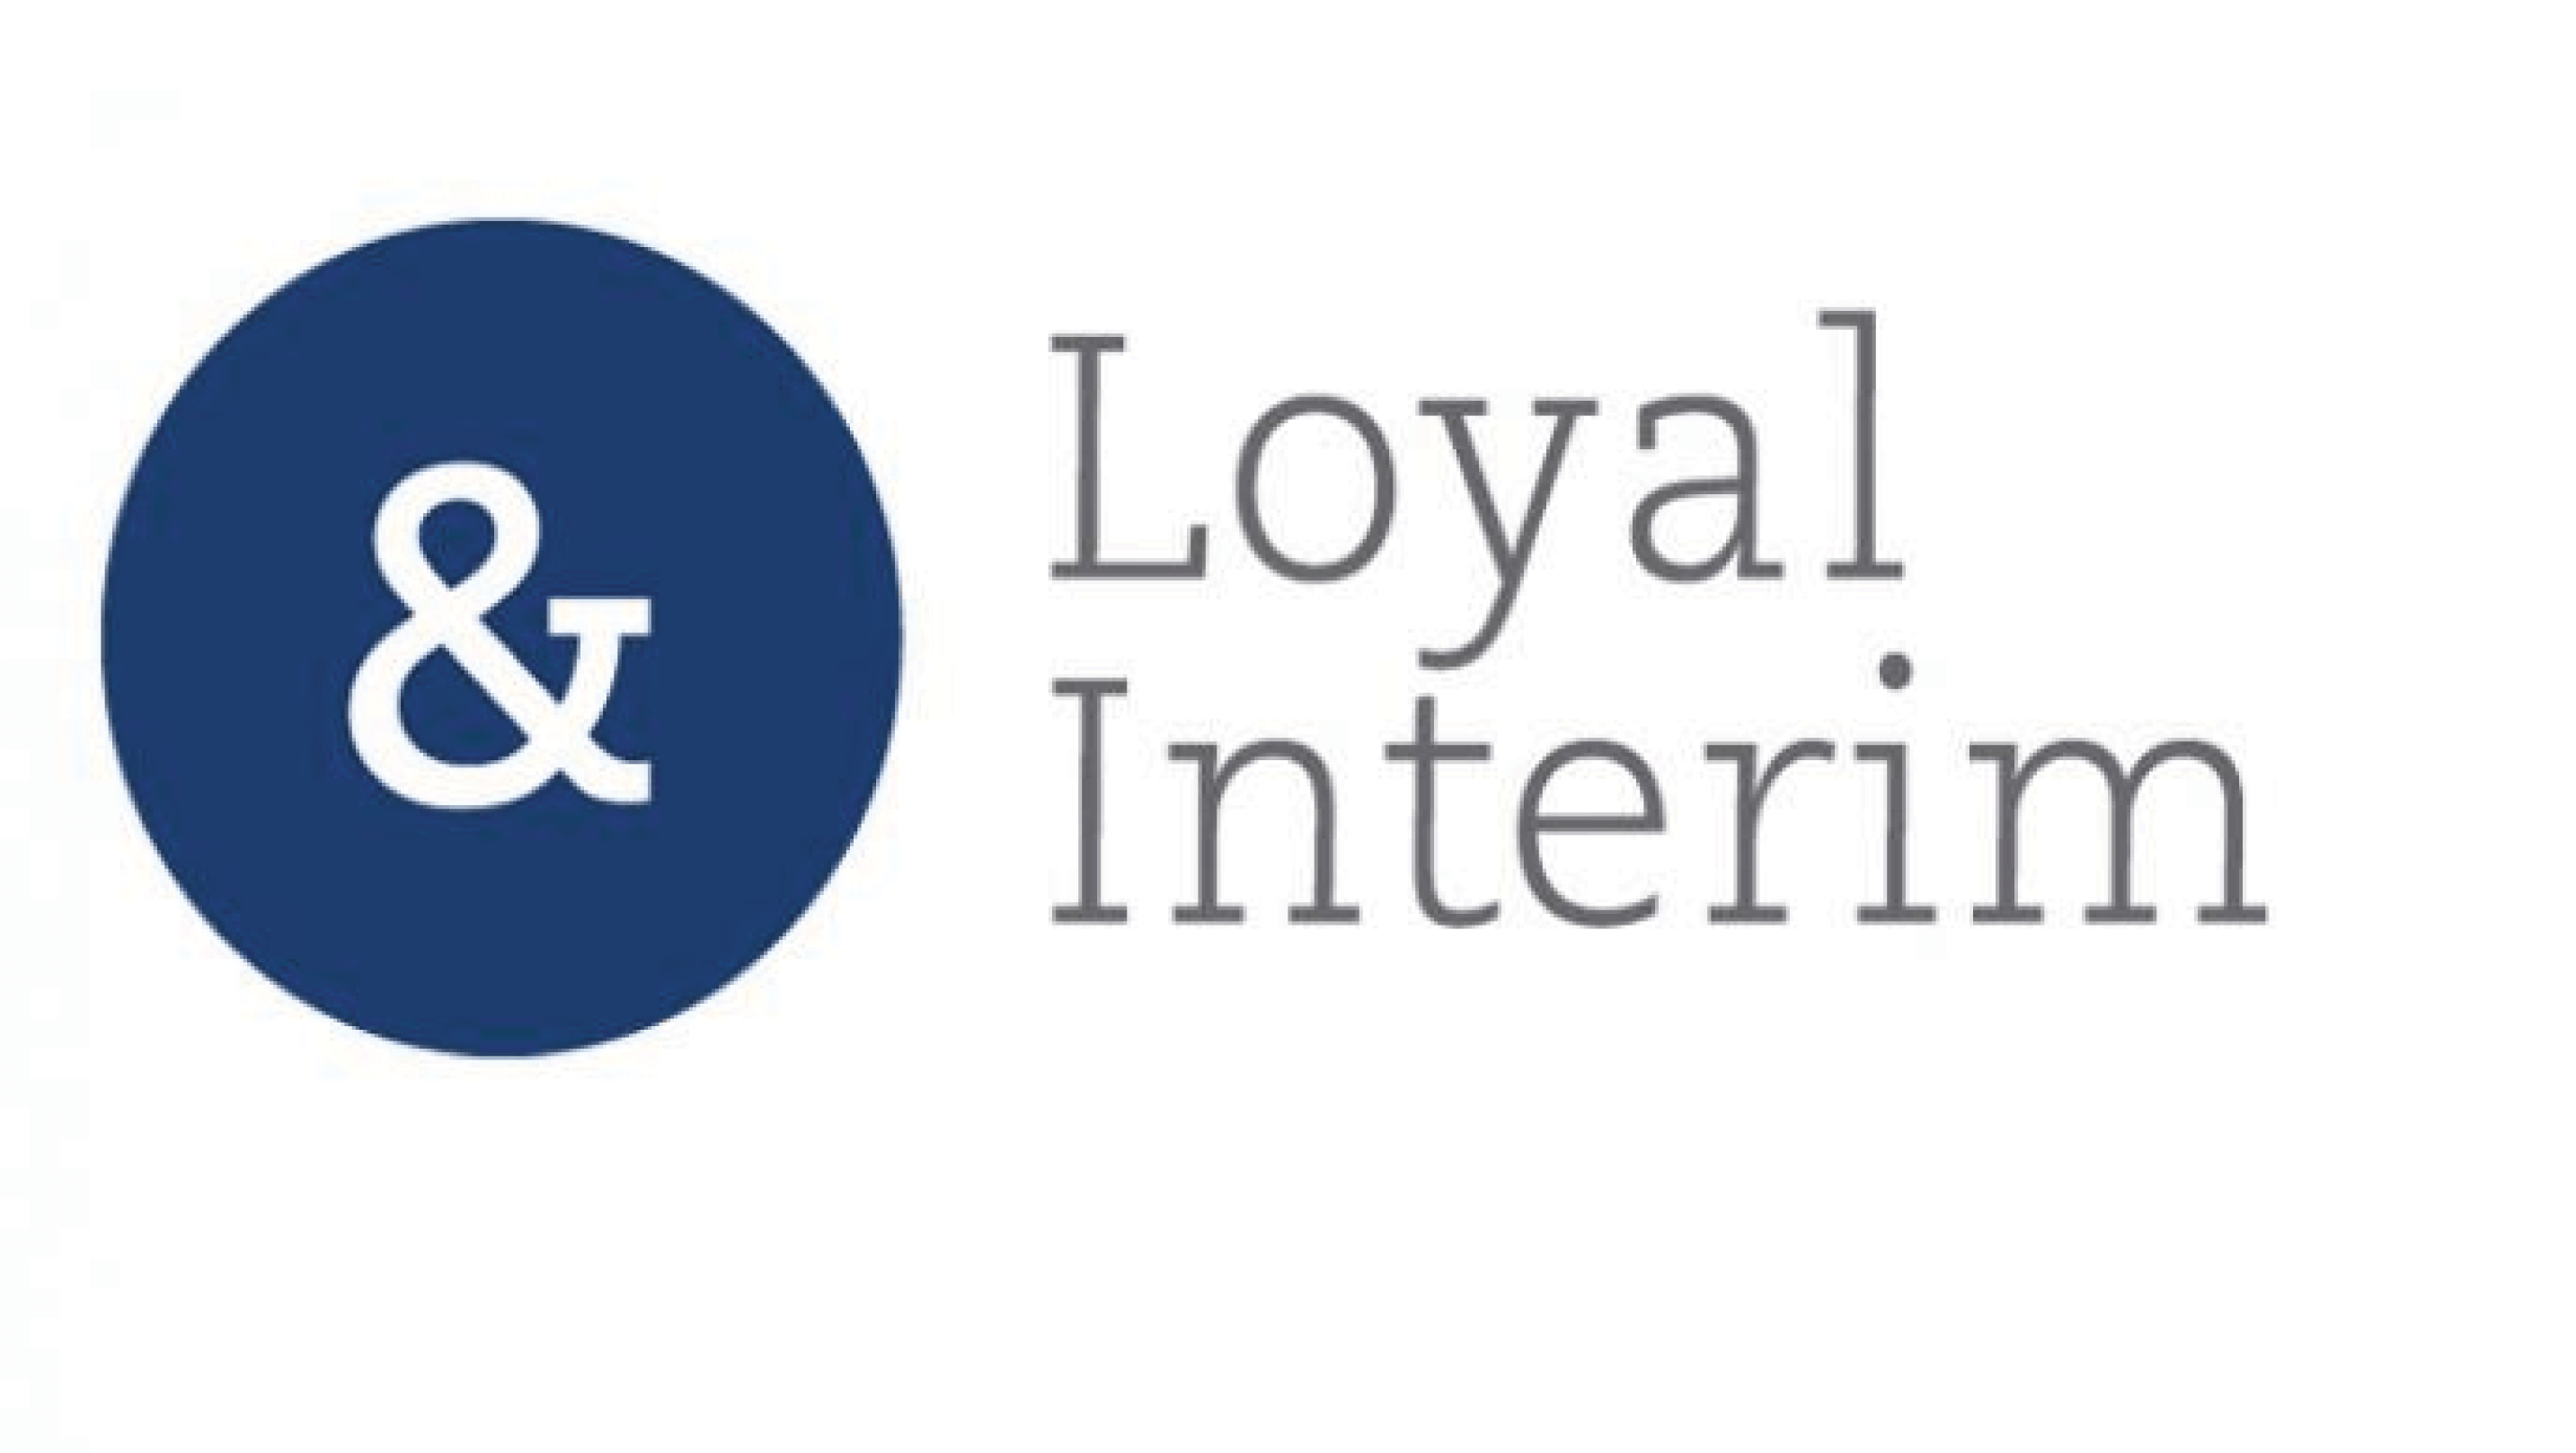 Loyal Interim logo